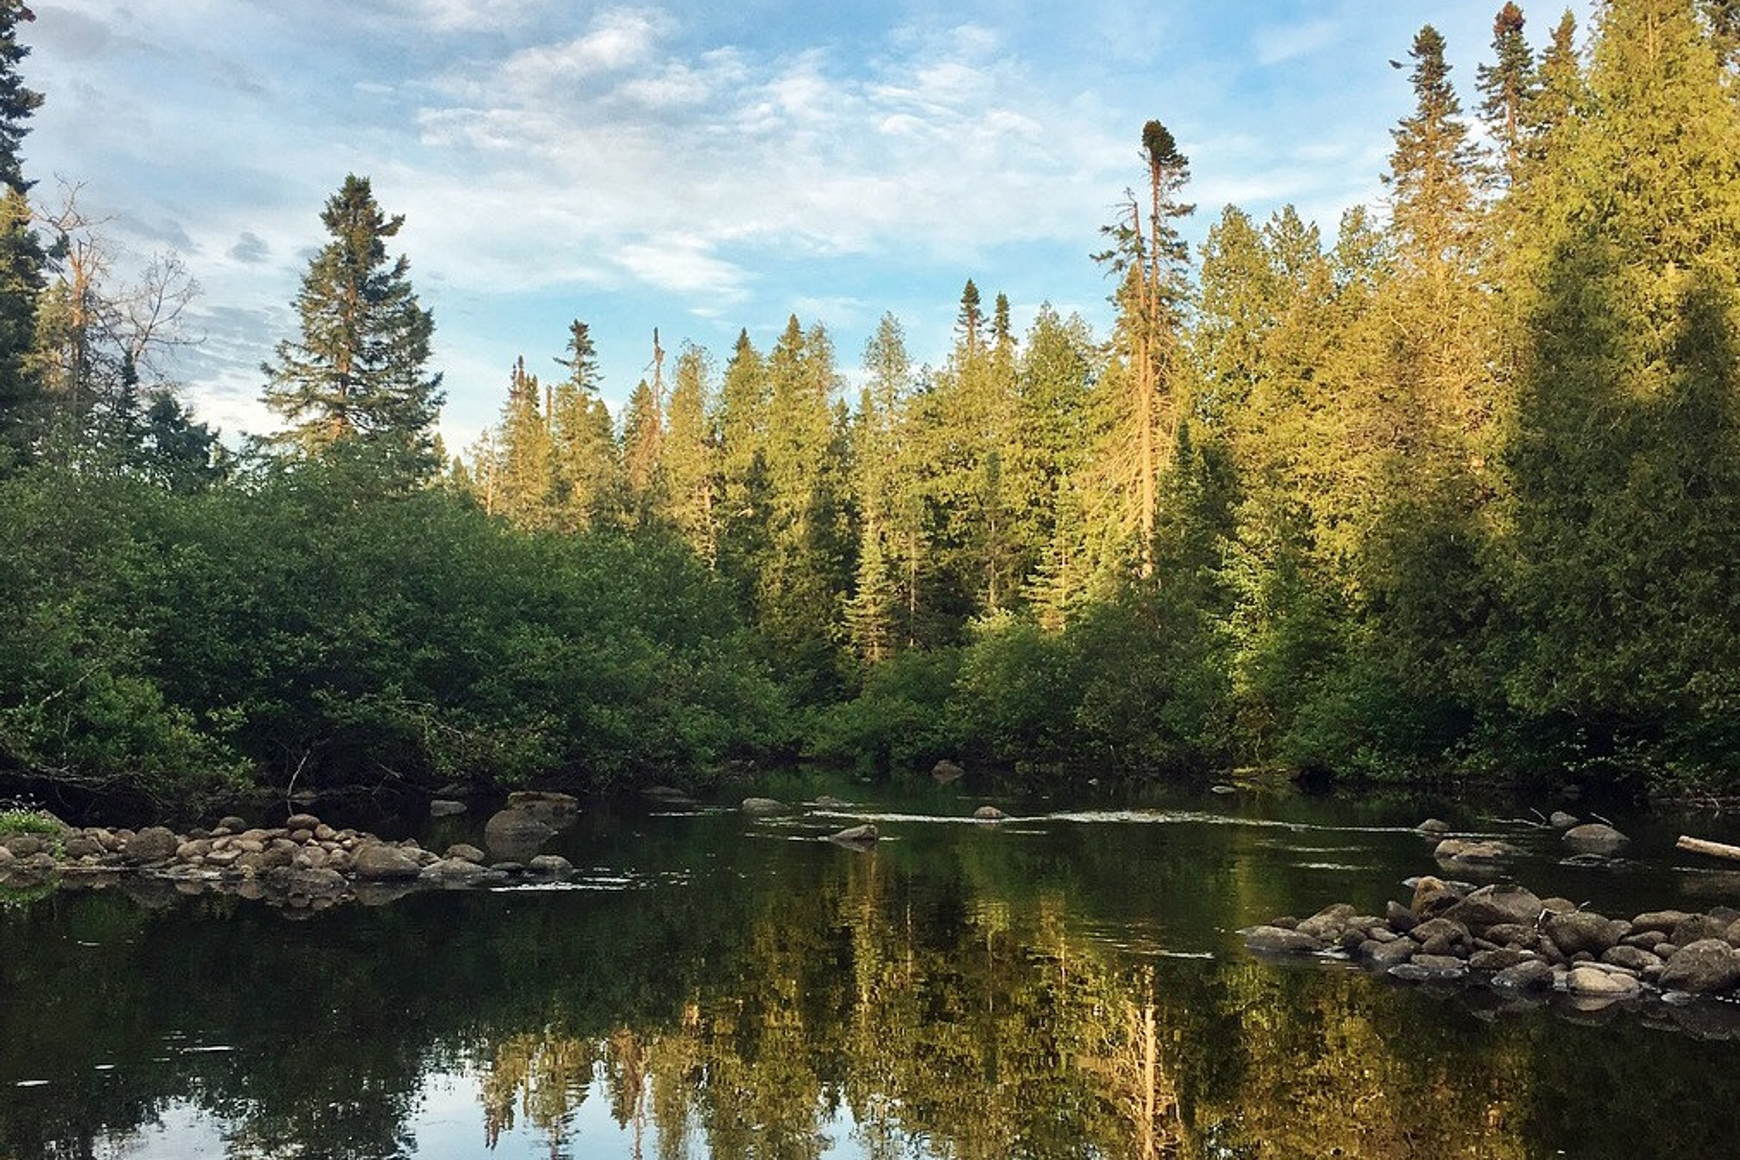 Peaceful summer photo of Brule River water reflecting blue sky and pine trees on its banks